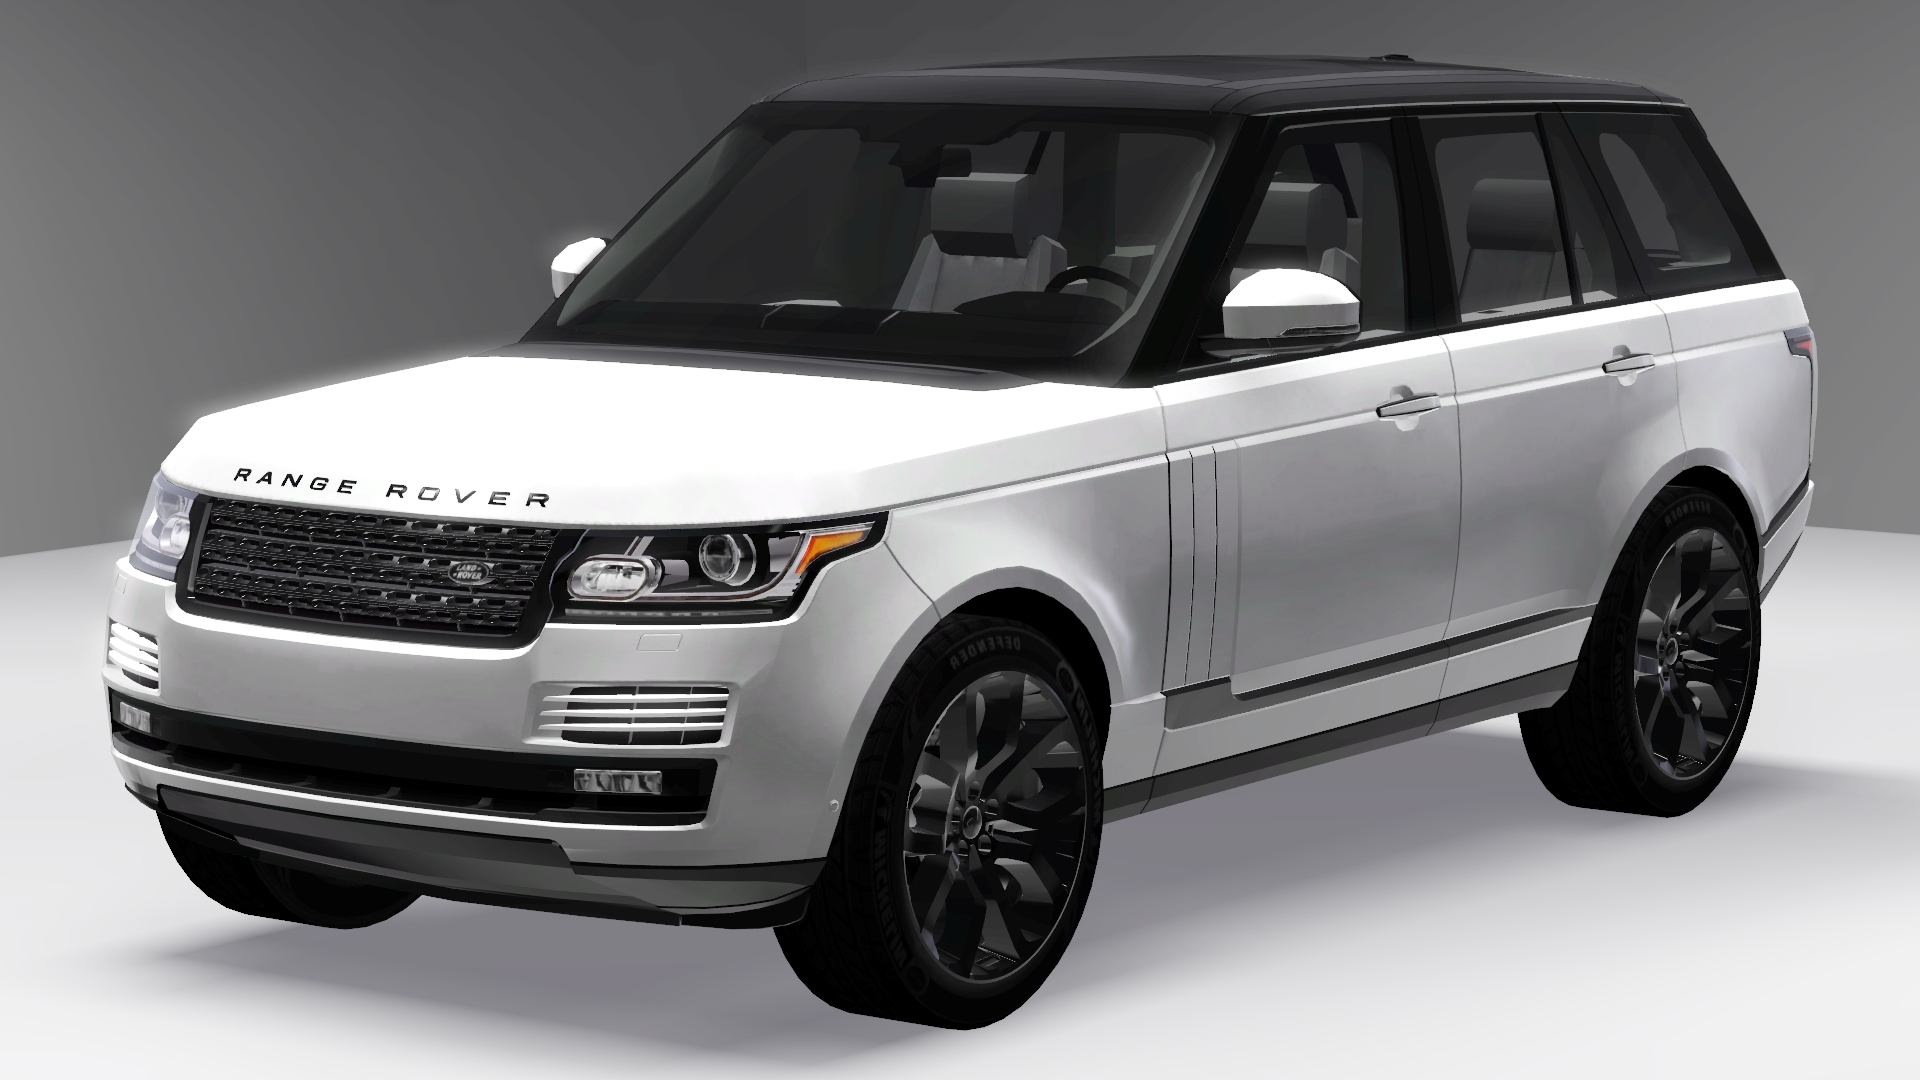 2016 Land Rover Range Rover by Fresh-Prince